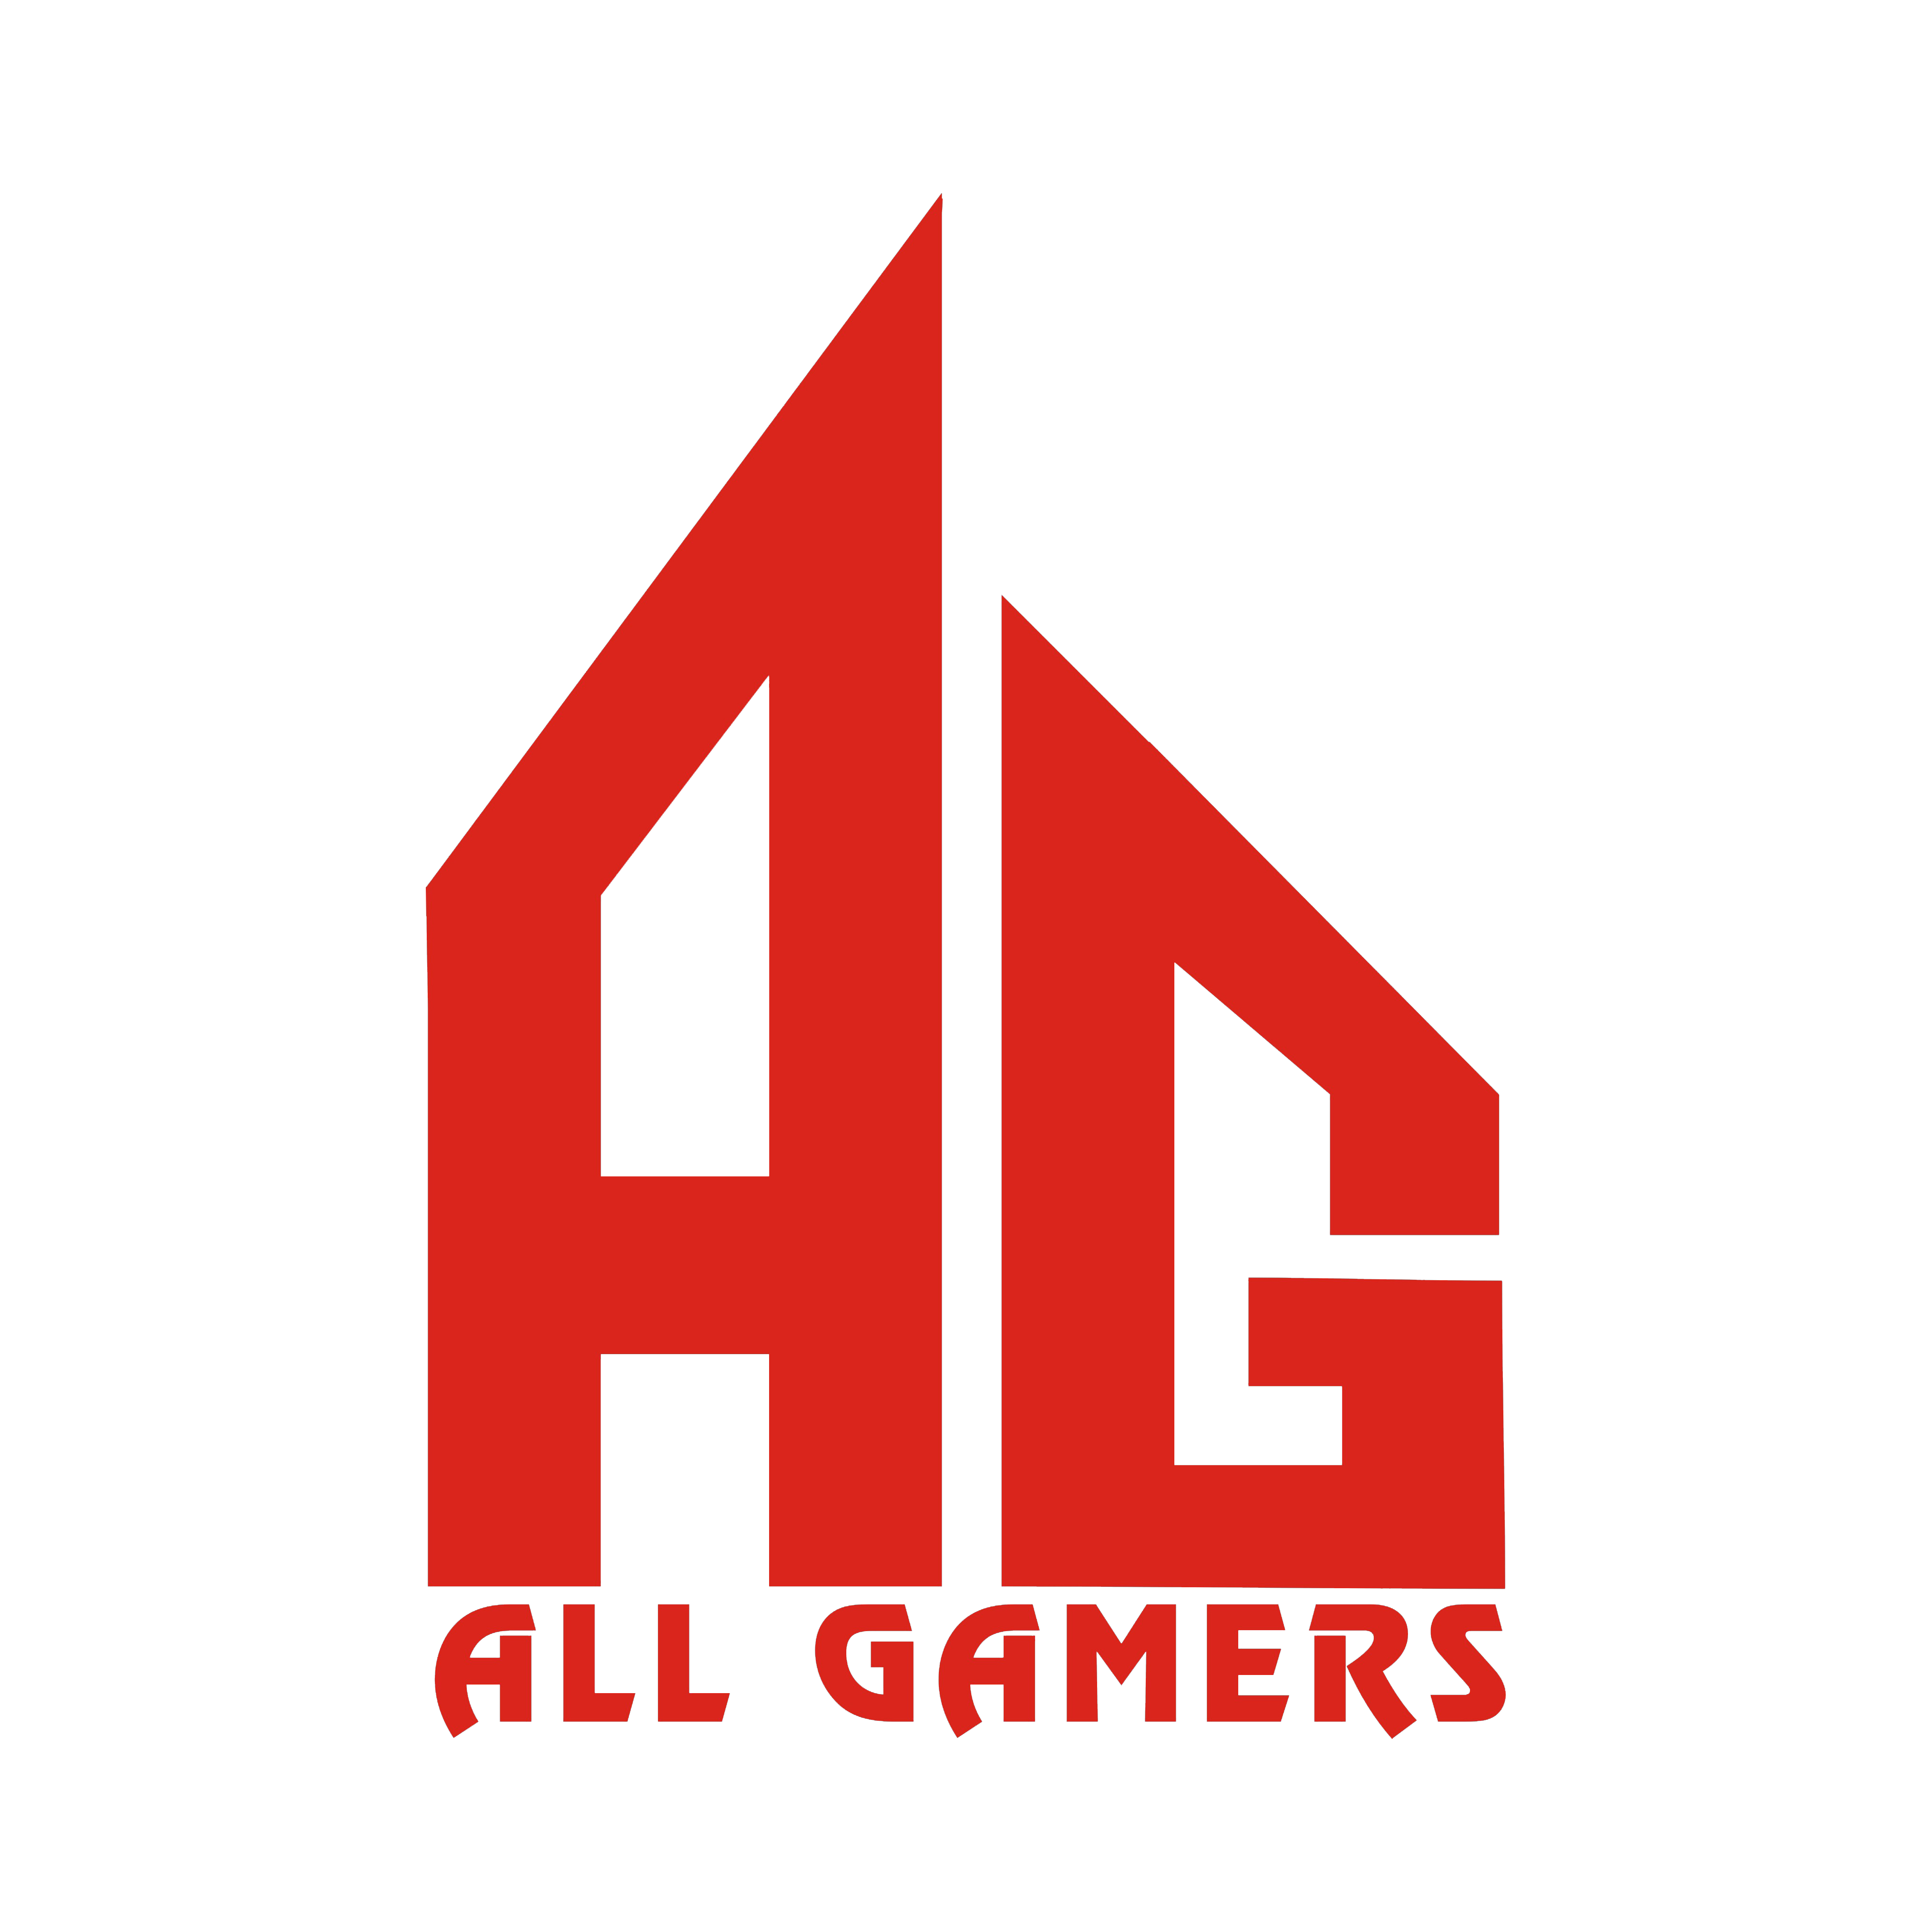 ALL GAMERS